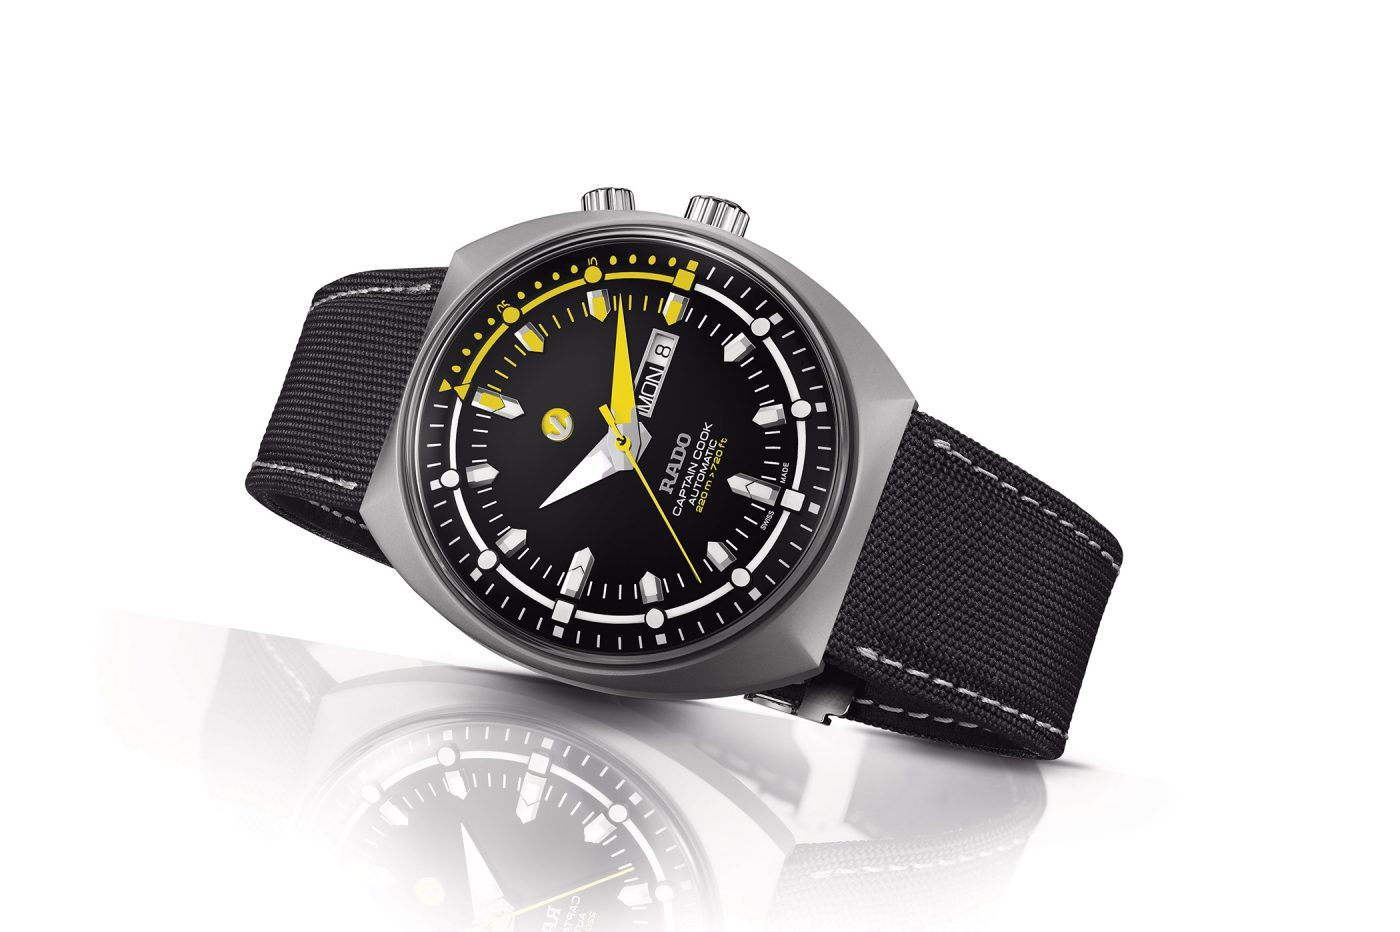 Rado Tradition Captain Cook MKIII Automatic [cena]